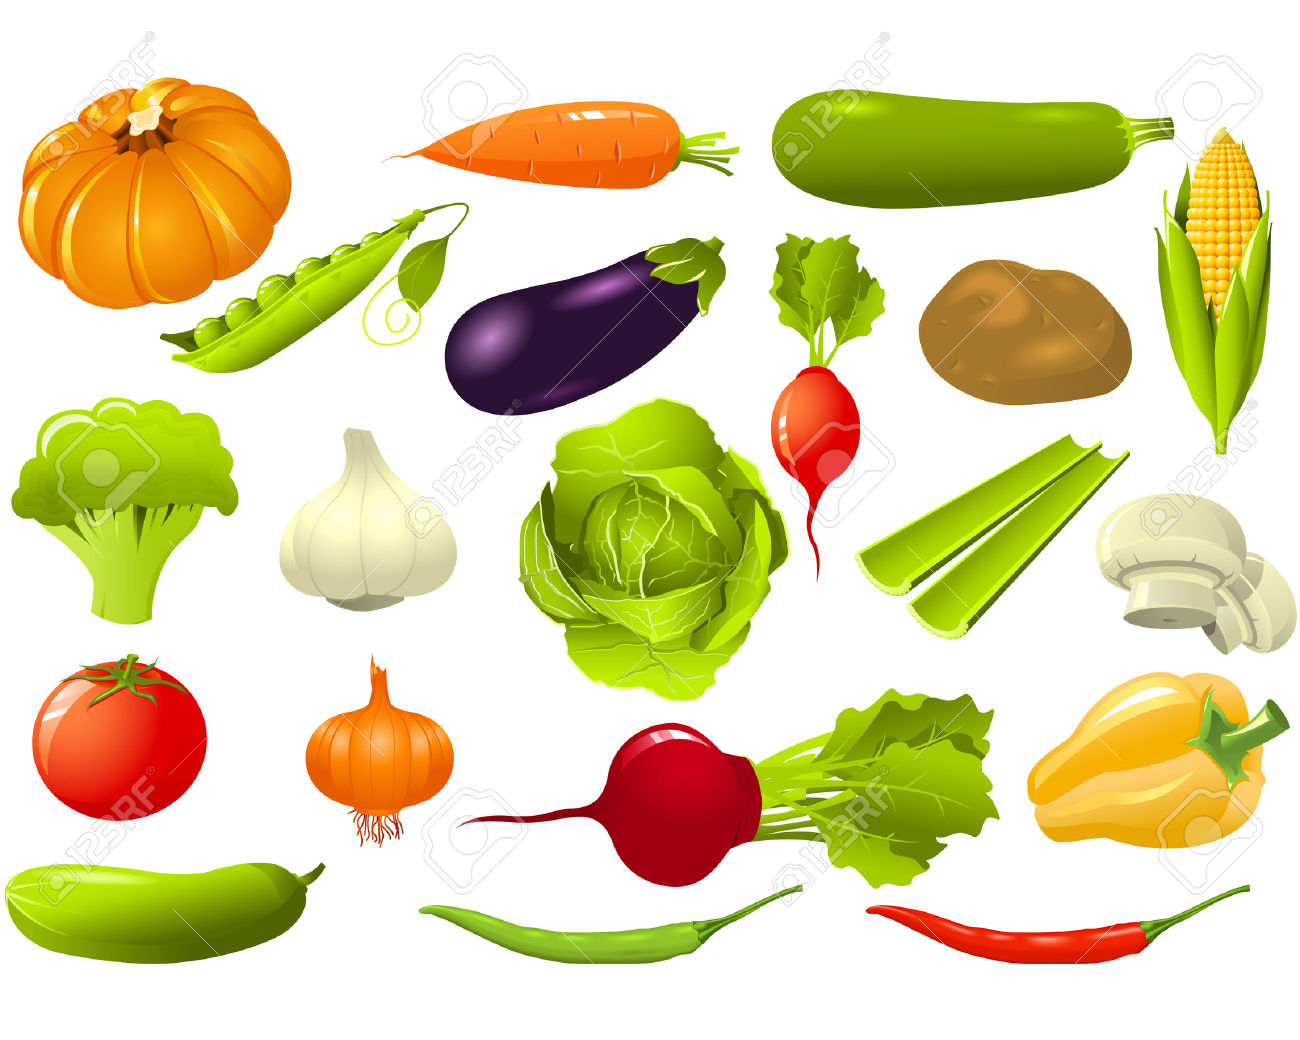 Set Of Vegetables Royalty Free Cliparts, Vectors, And Stock.